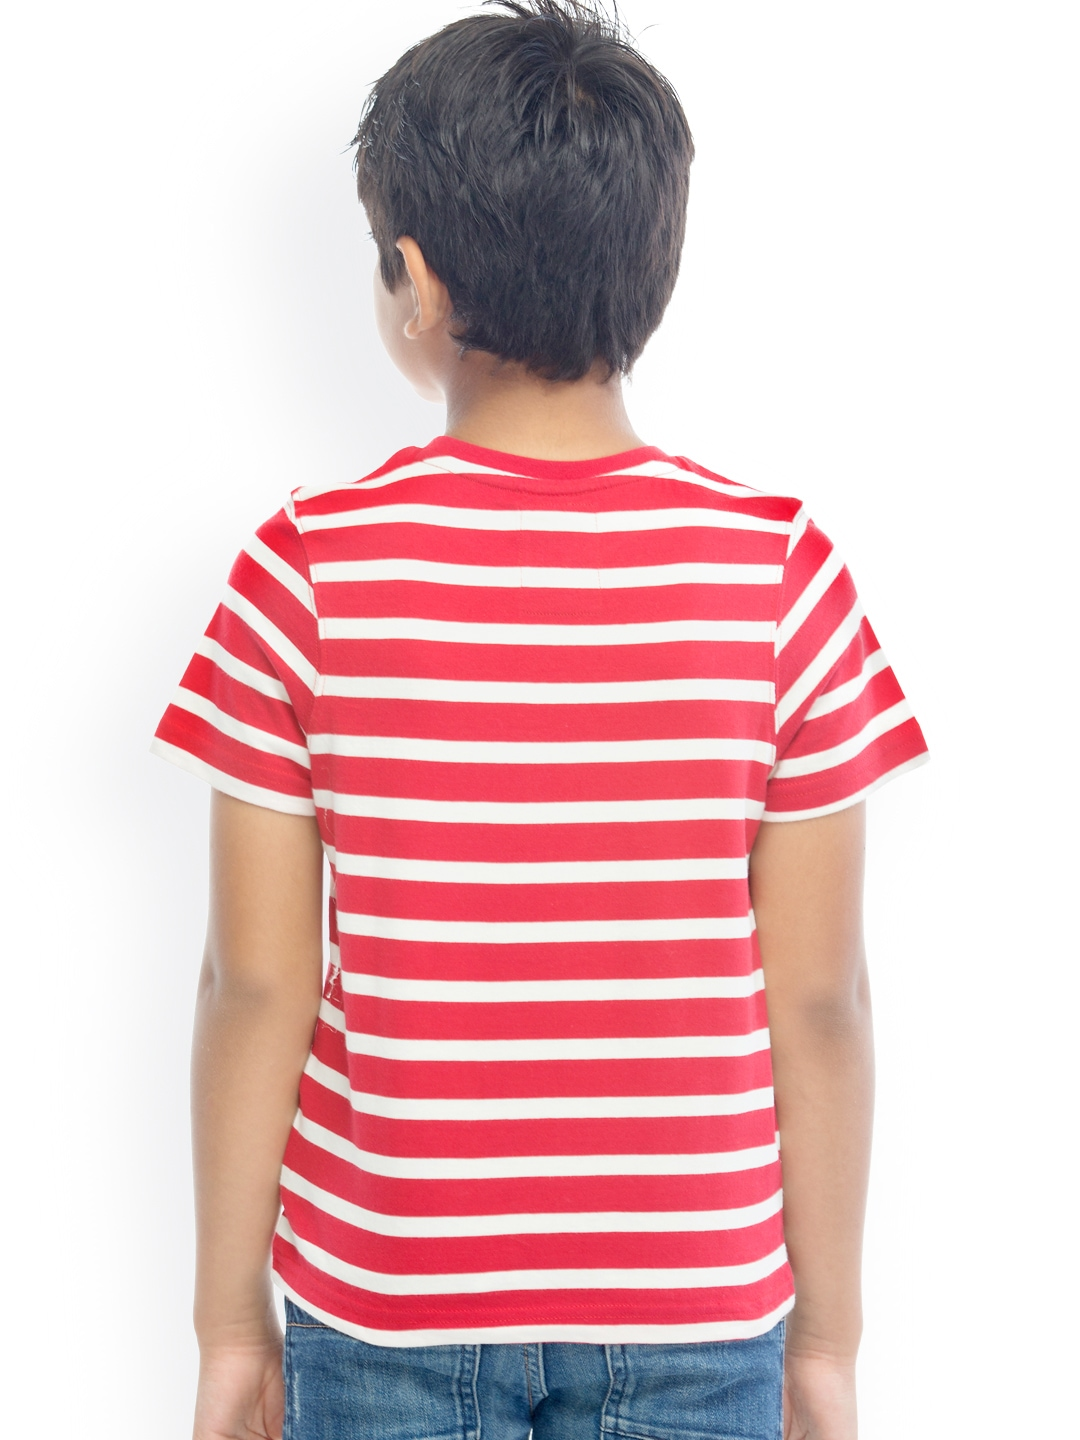 Colour: Red/White Stripe T-shirtSize: Boys Yrs Verified Purchase The stitching was extremely poor. Bits of cotton hanging out while it had been sewn over and down the seam there was a gaping hole/5.